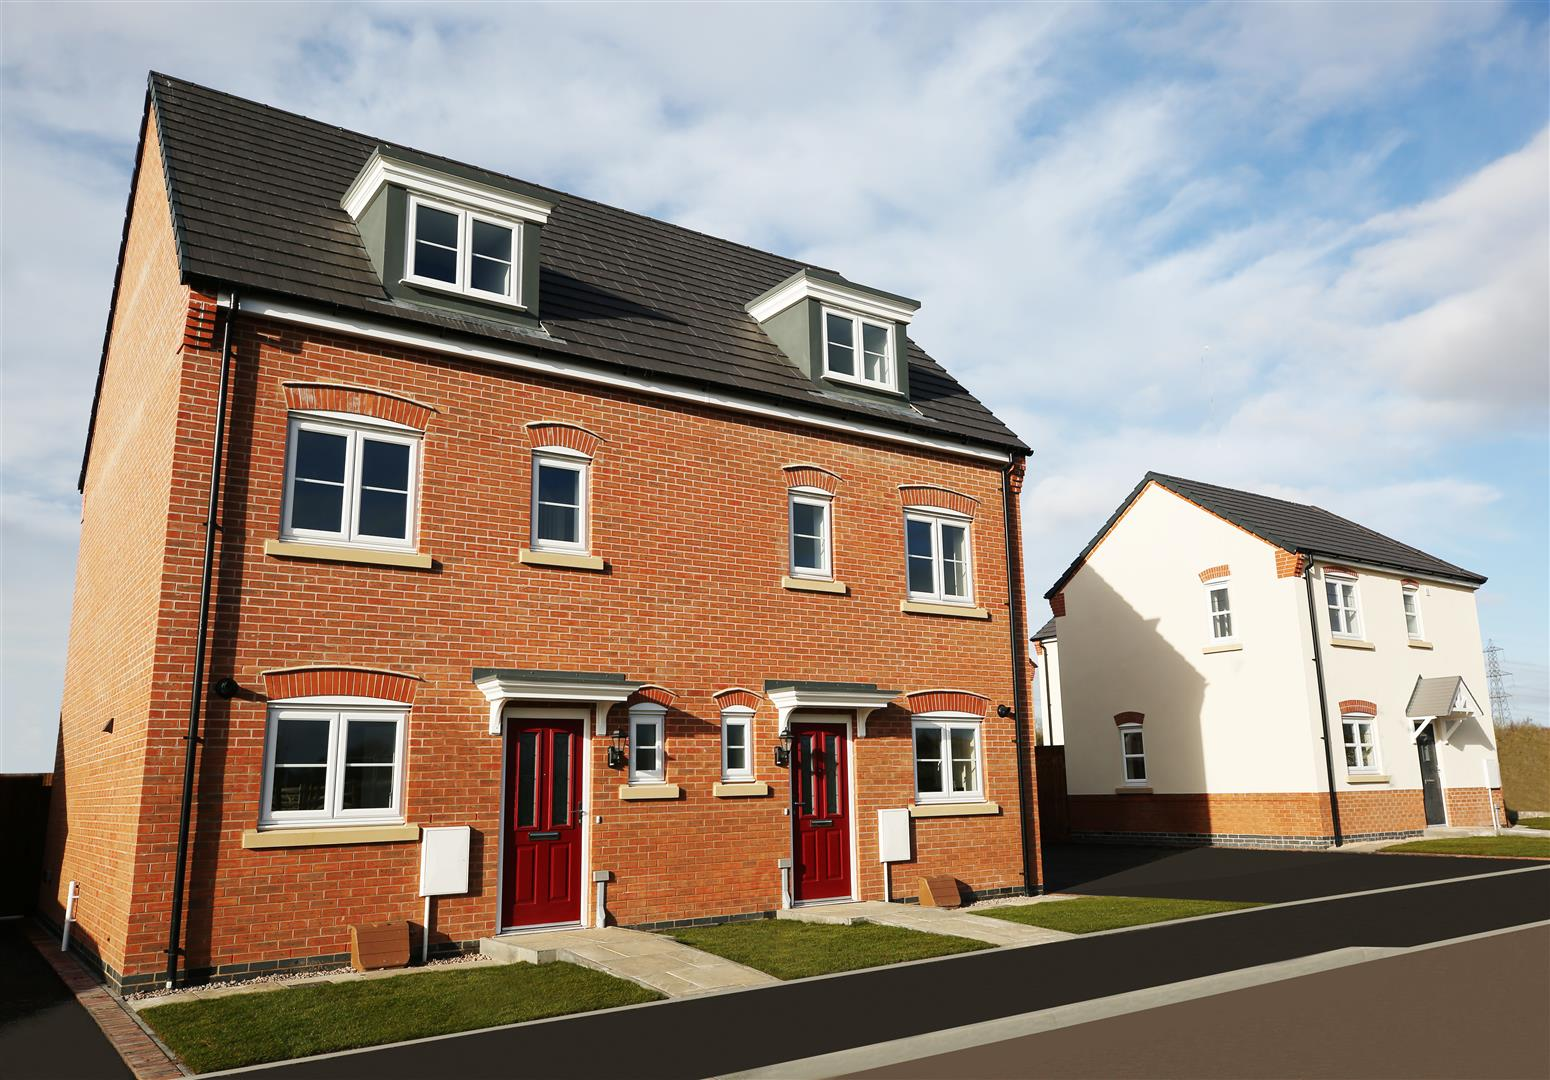 House Semi Detached Archives Roy Green Full Brick Brand New Home On Wiring To Garage The Bunting Is A 3 Bedroom Storey Comprising Of Lounge Kitchen Cloakroom Bedrooms En Suite Master Family Bathroom